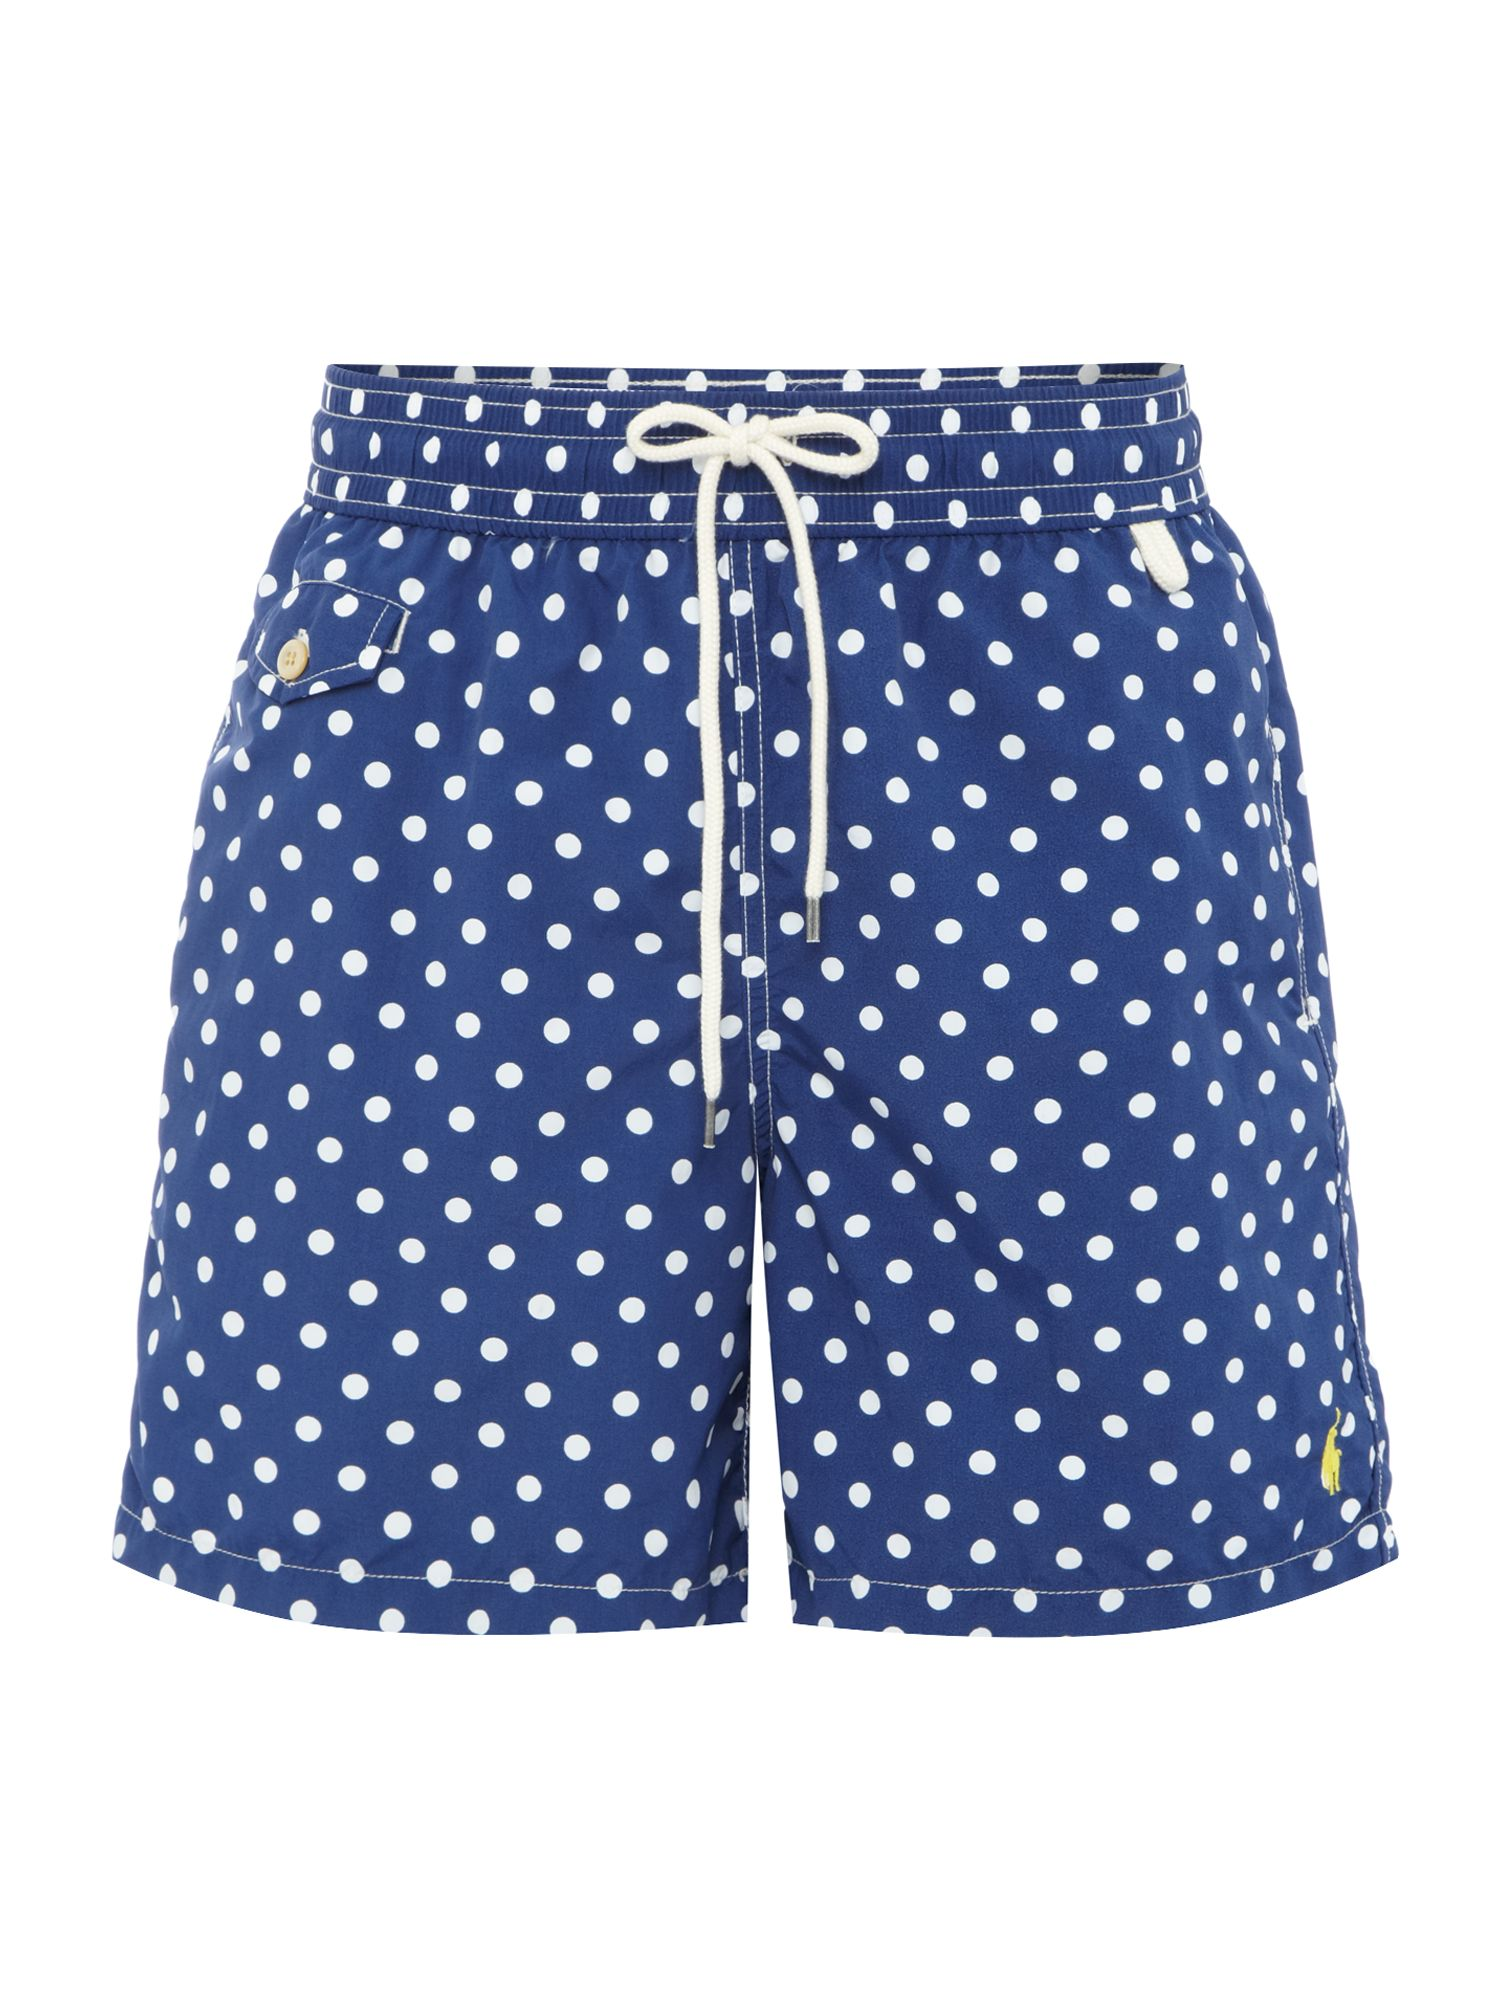 Polka dot swim short